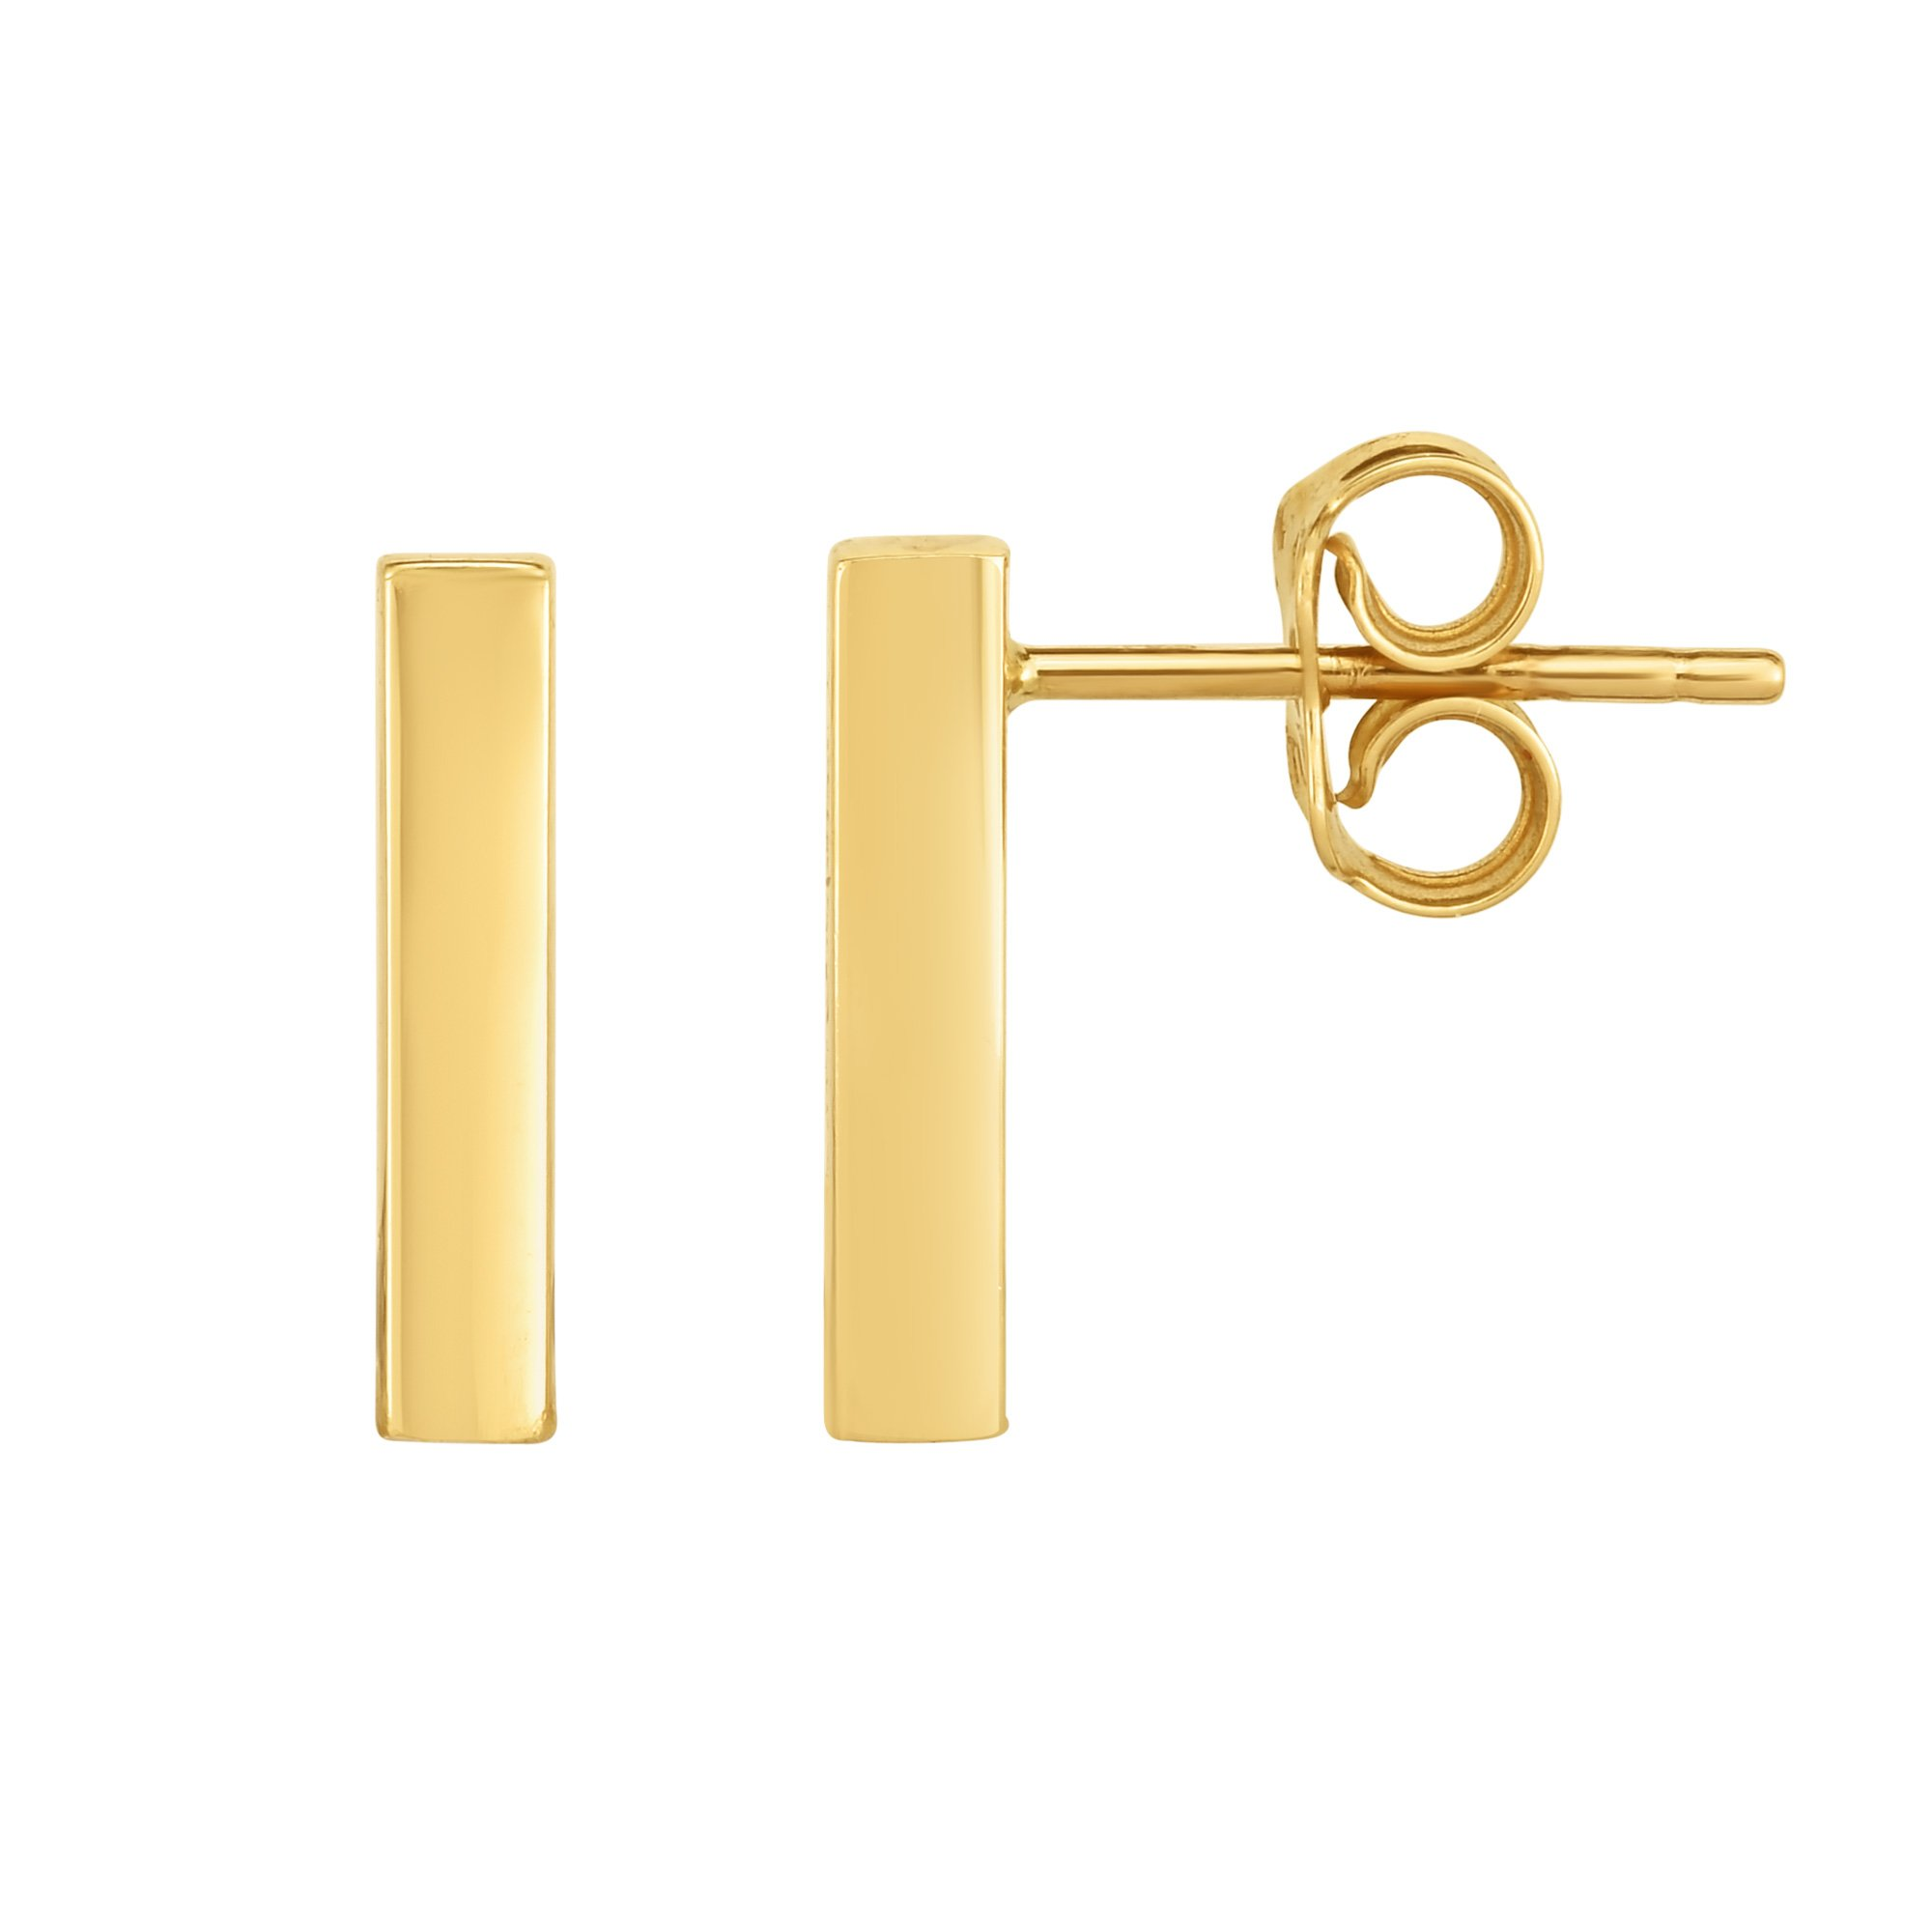 14K Gold Yellow Bar Square Tube Style Climber Stud Earrings by JewelryAffairs